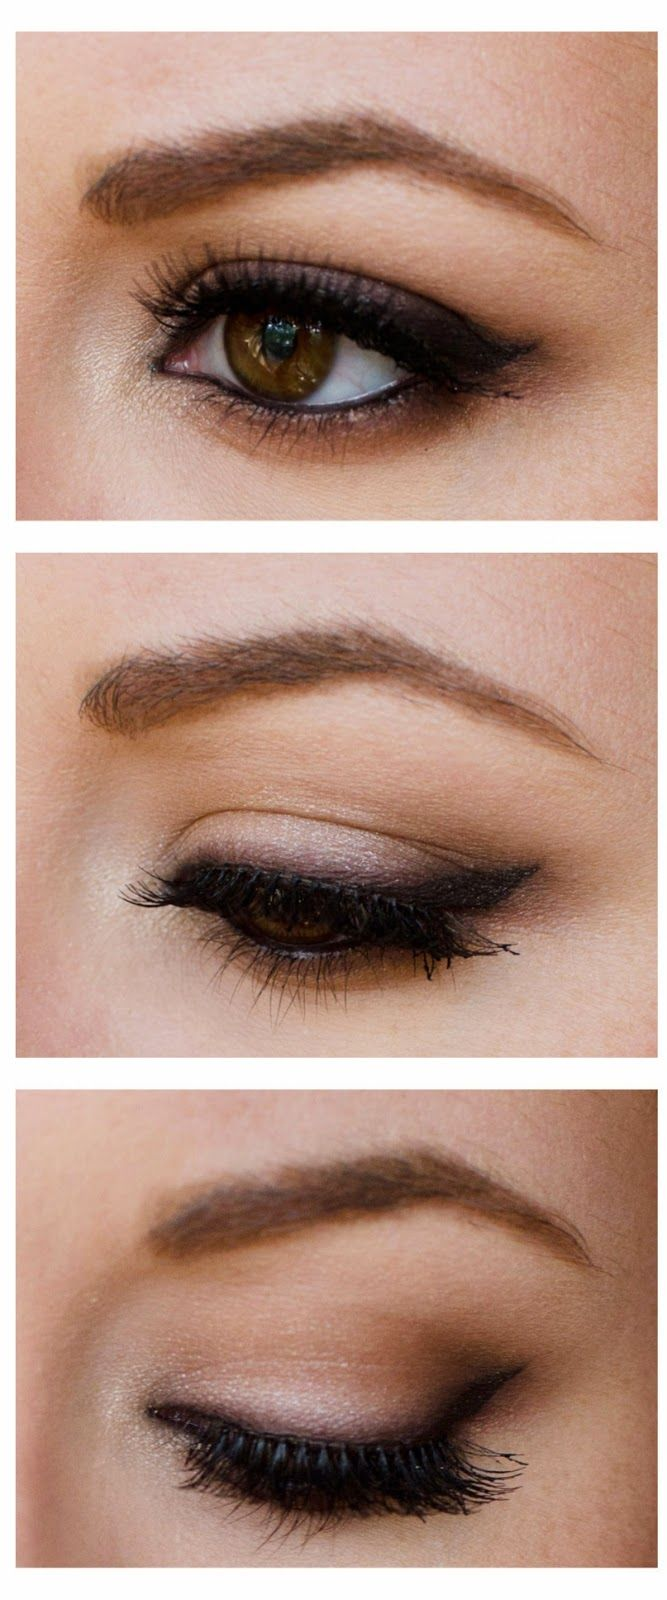 Glamorcast | Makeup - Beauty - Fashion: Smokey black/brown liner